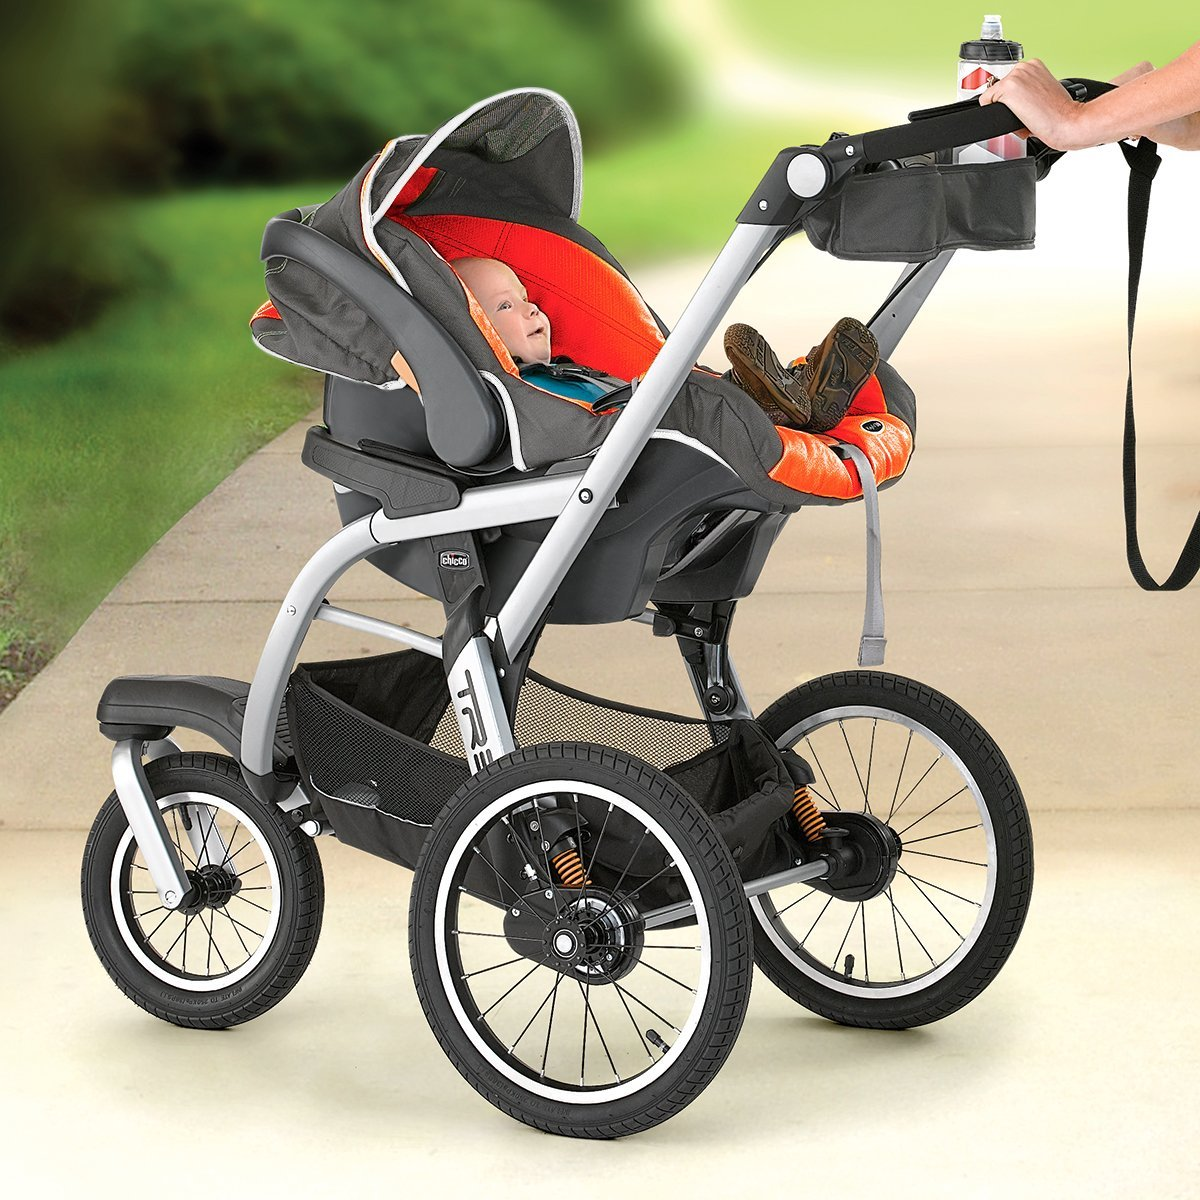 Chicco Echo Twin Stroller Coal (Black/Grey). Bought reidebadu.tk as back up for our main buggy. Only been used 3/4 times over last 2 years so like new. Original rain covers included, unopened. € new. € asking price.